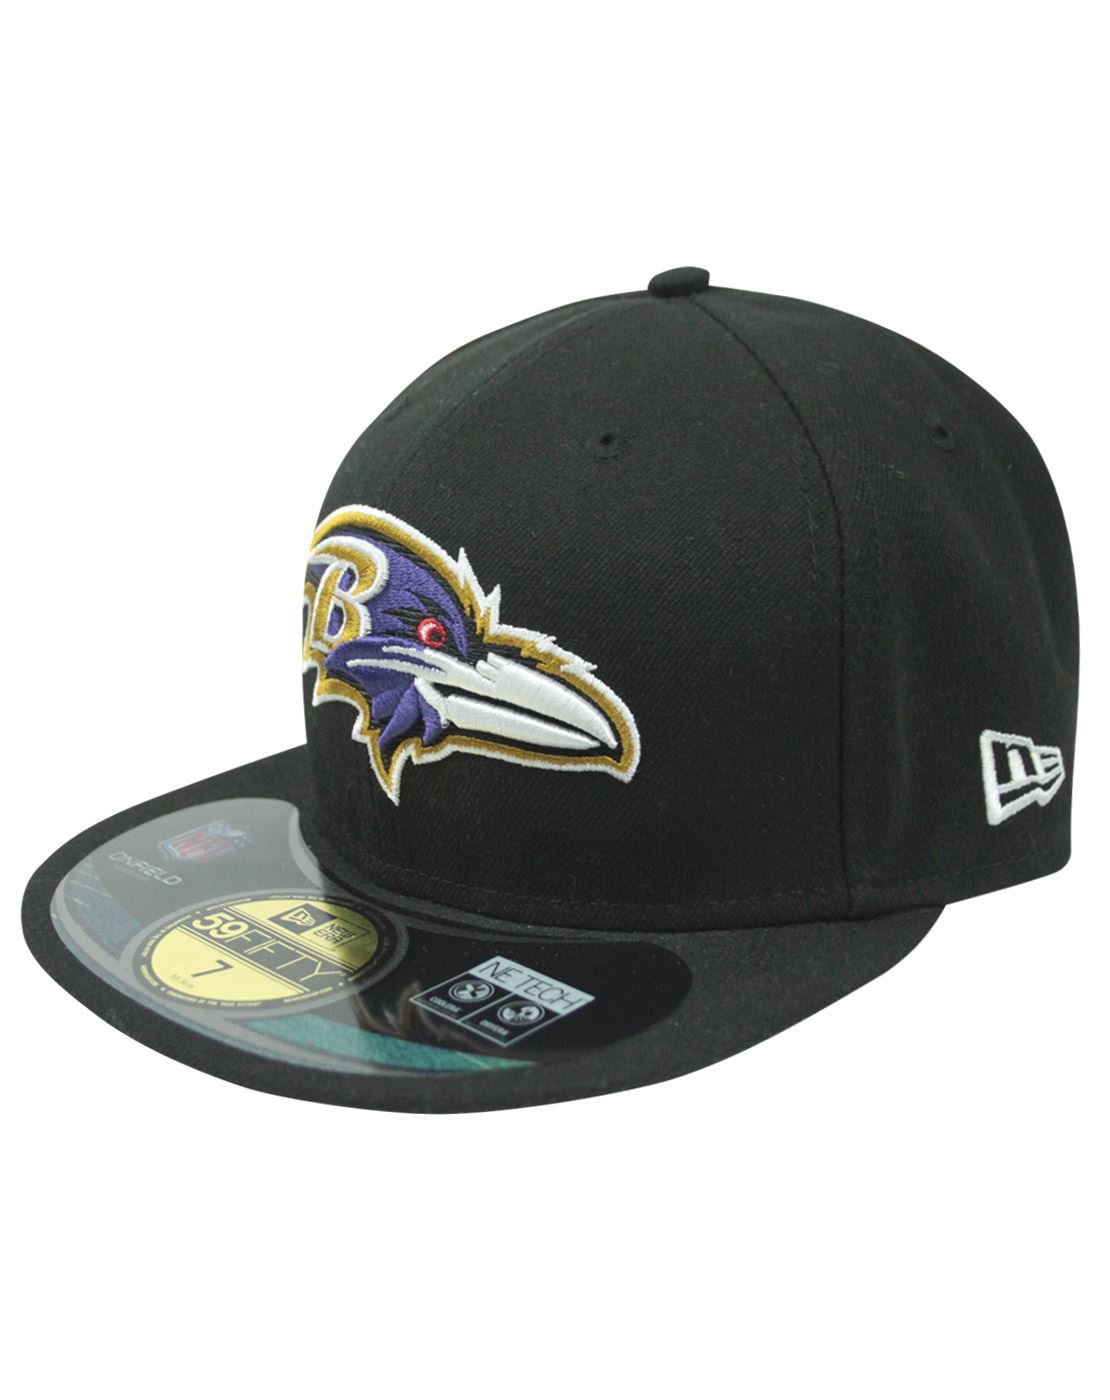 New Era 59Fifty NFL Baltimore Ravens Cap – Vanilla Underground 0a4e63106